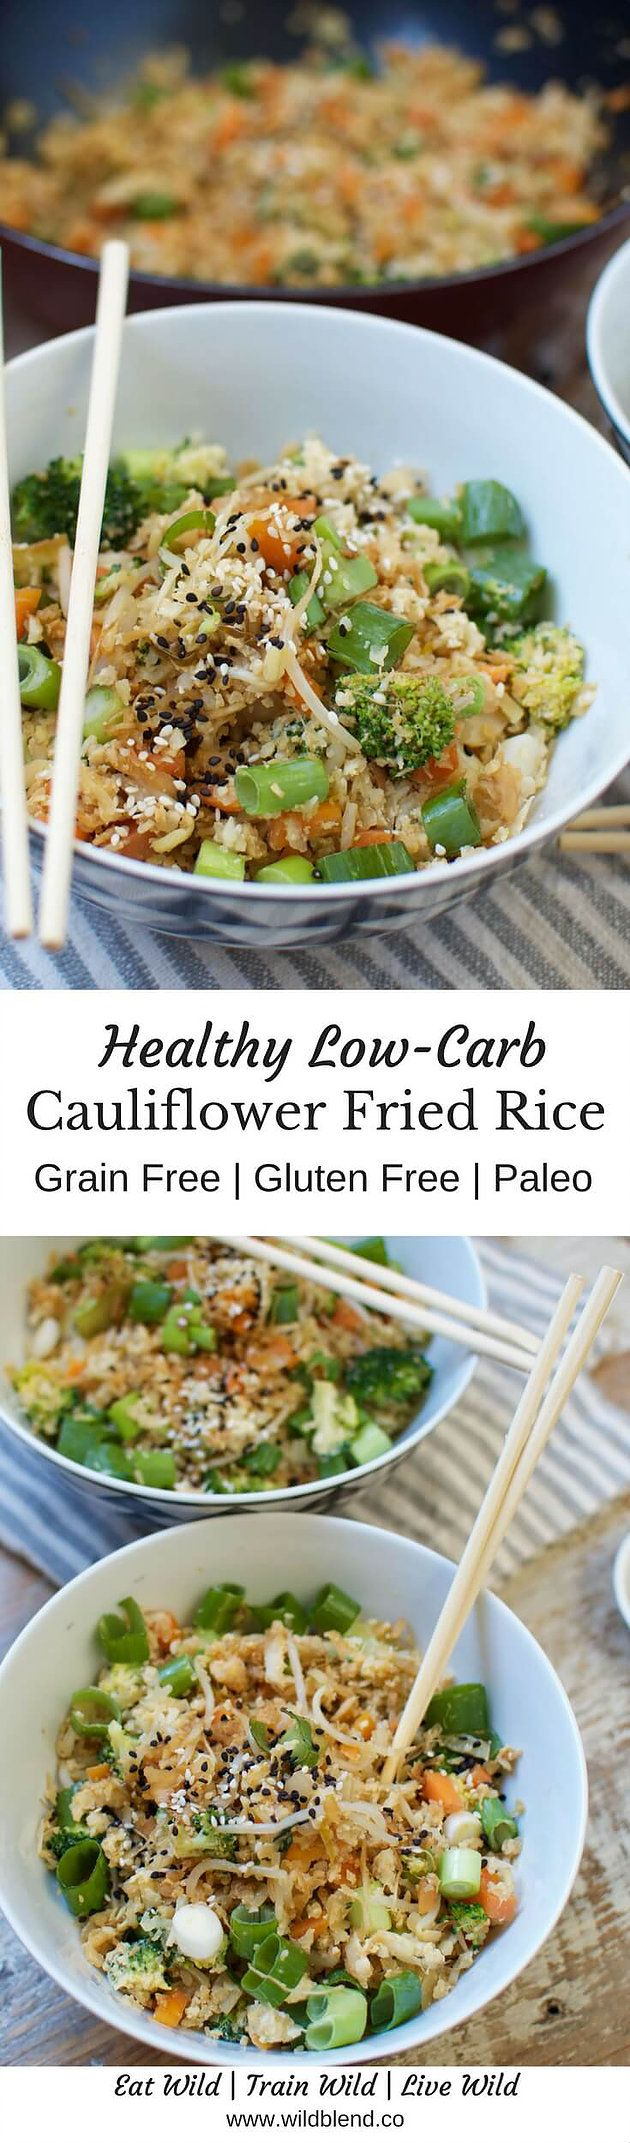 Get the full recipe here: This low-carb, veggie-packed Cauliflower Fried Rice is a healthy Paleo-friendly alternative to classic Asian fried rice. http://www.wildblend.co/single-post/2016/10/10/Cauliflower-Fried-Rice